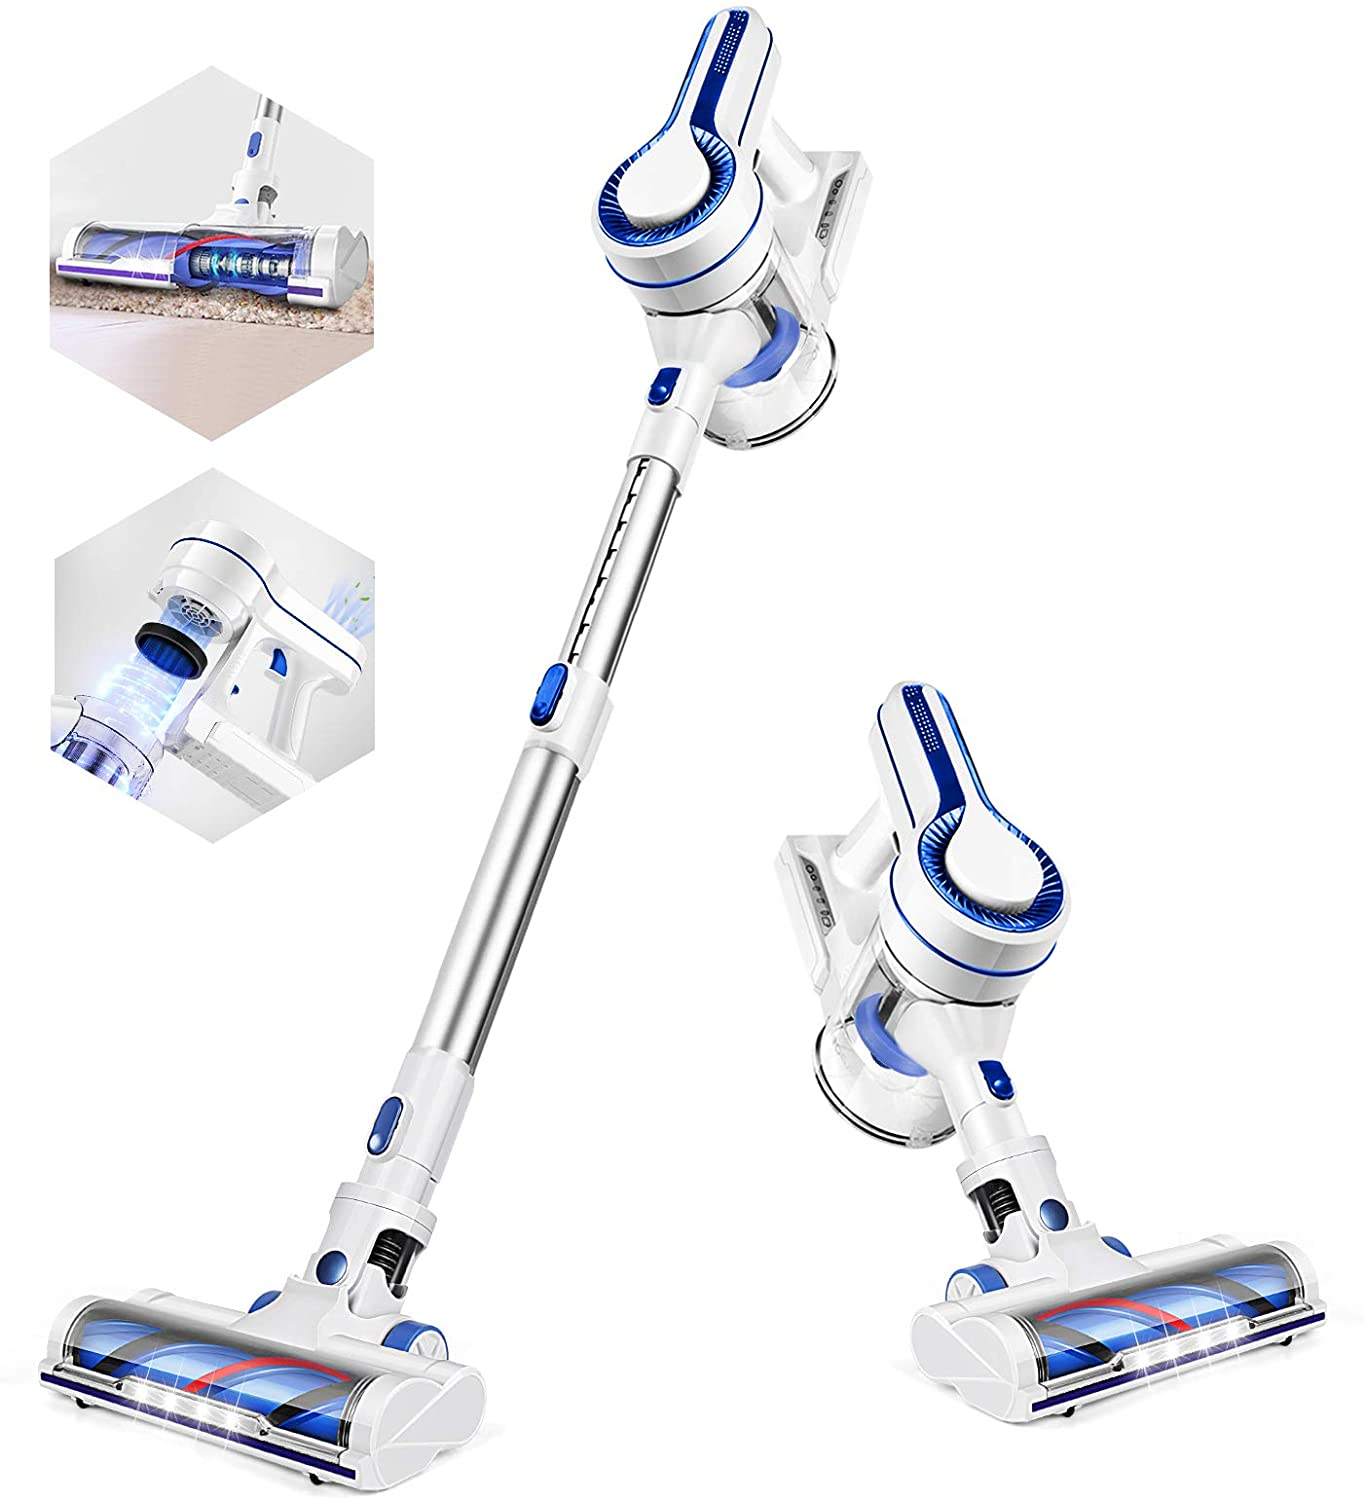 [US Direct] APOSEN Cordless Vacuum Cleaner,14KPA Powerful Suction Stick Vacuum Cleaner 4 in 1 with Rechargeable Battery and 1.2L Large Dust Container, Vac for Hard Wood Tile Floor Car